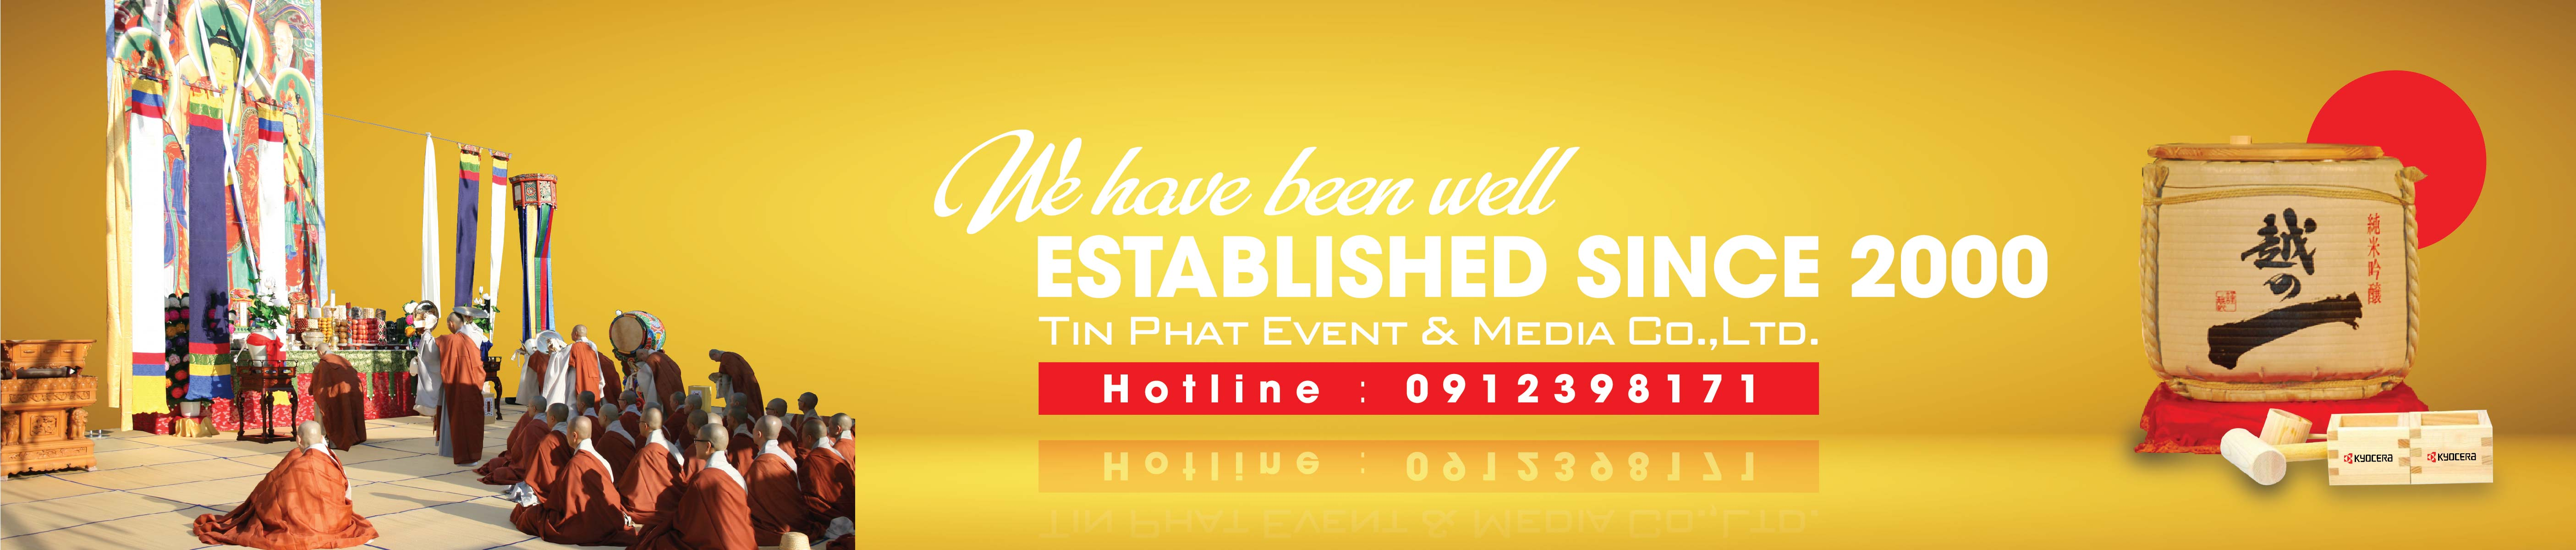 Tin Phat Event & Media Co.,Ltd.